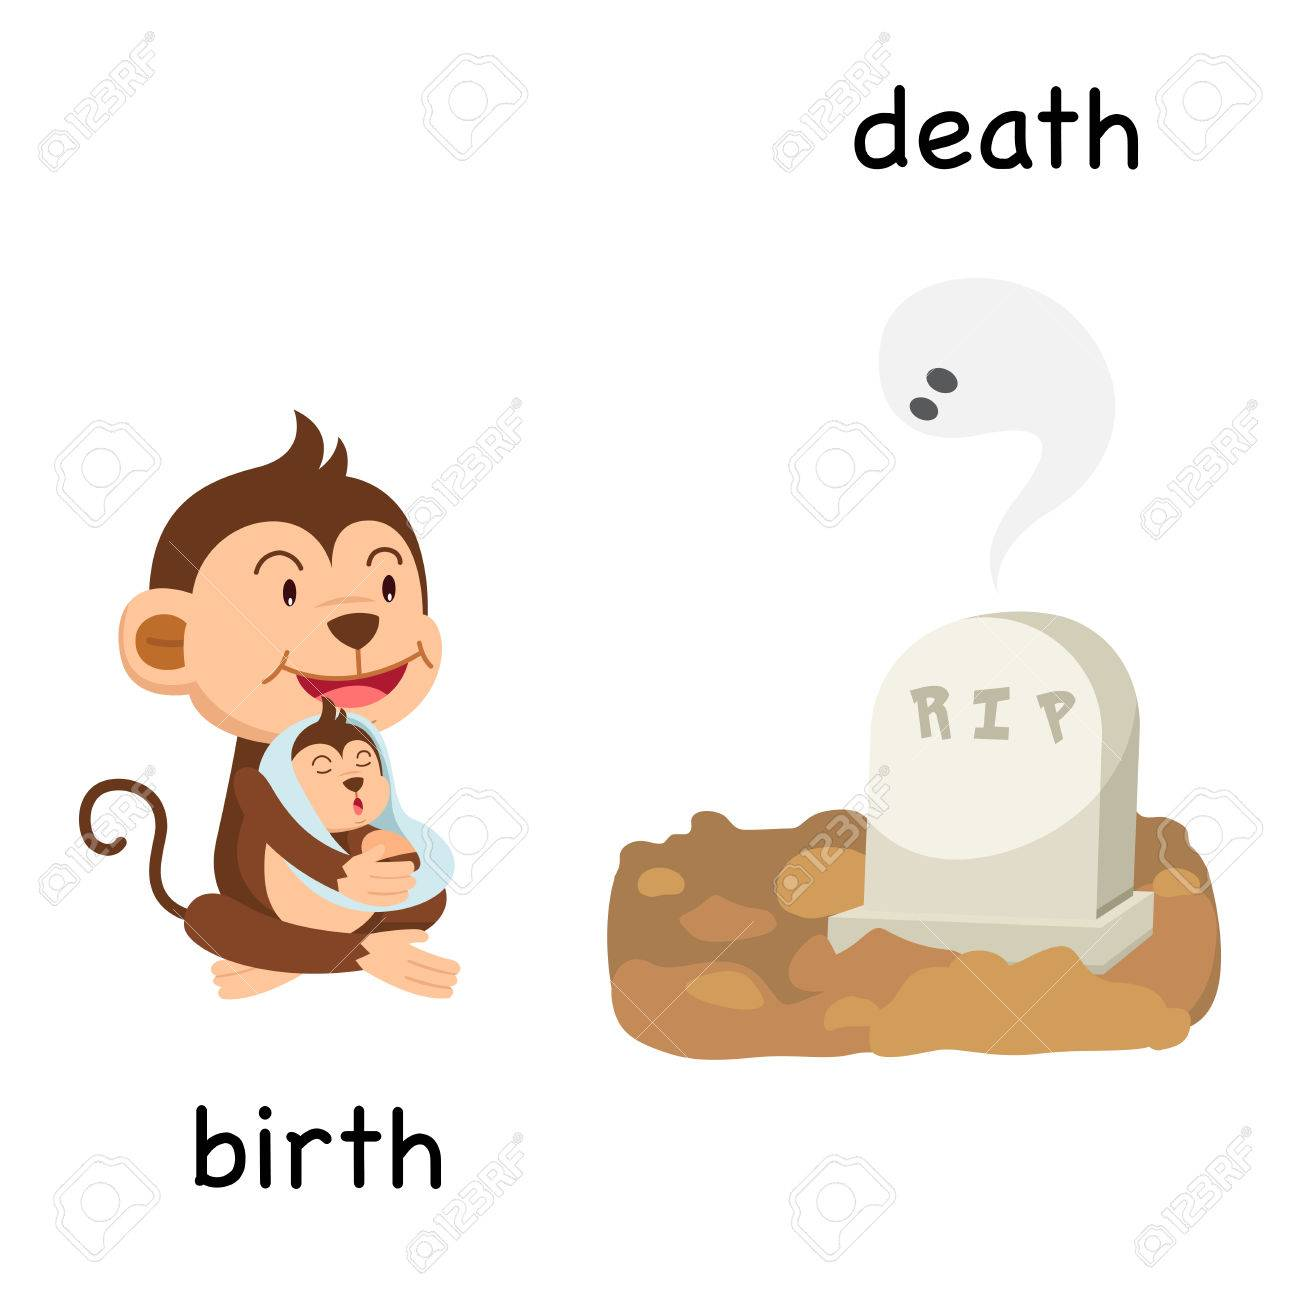 opposite birth and death vector illustration royalty free cliparts vectors and stock illustration image 82182148 opposite birth and death vector illustration